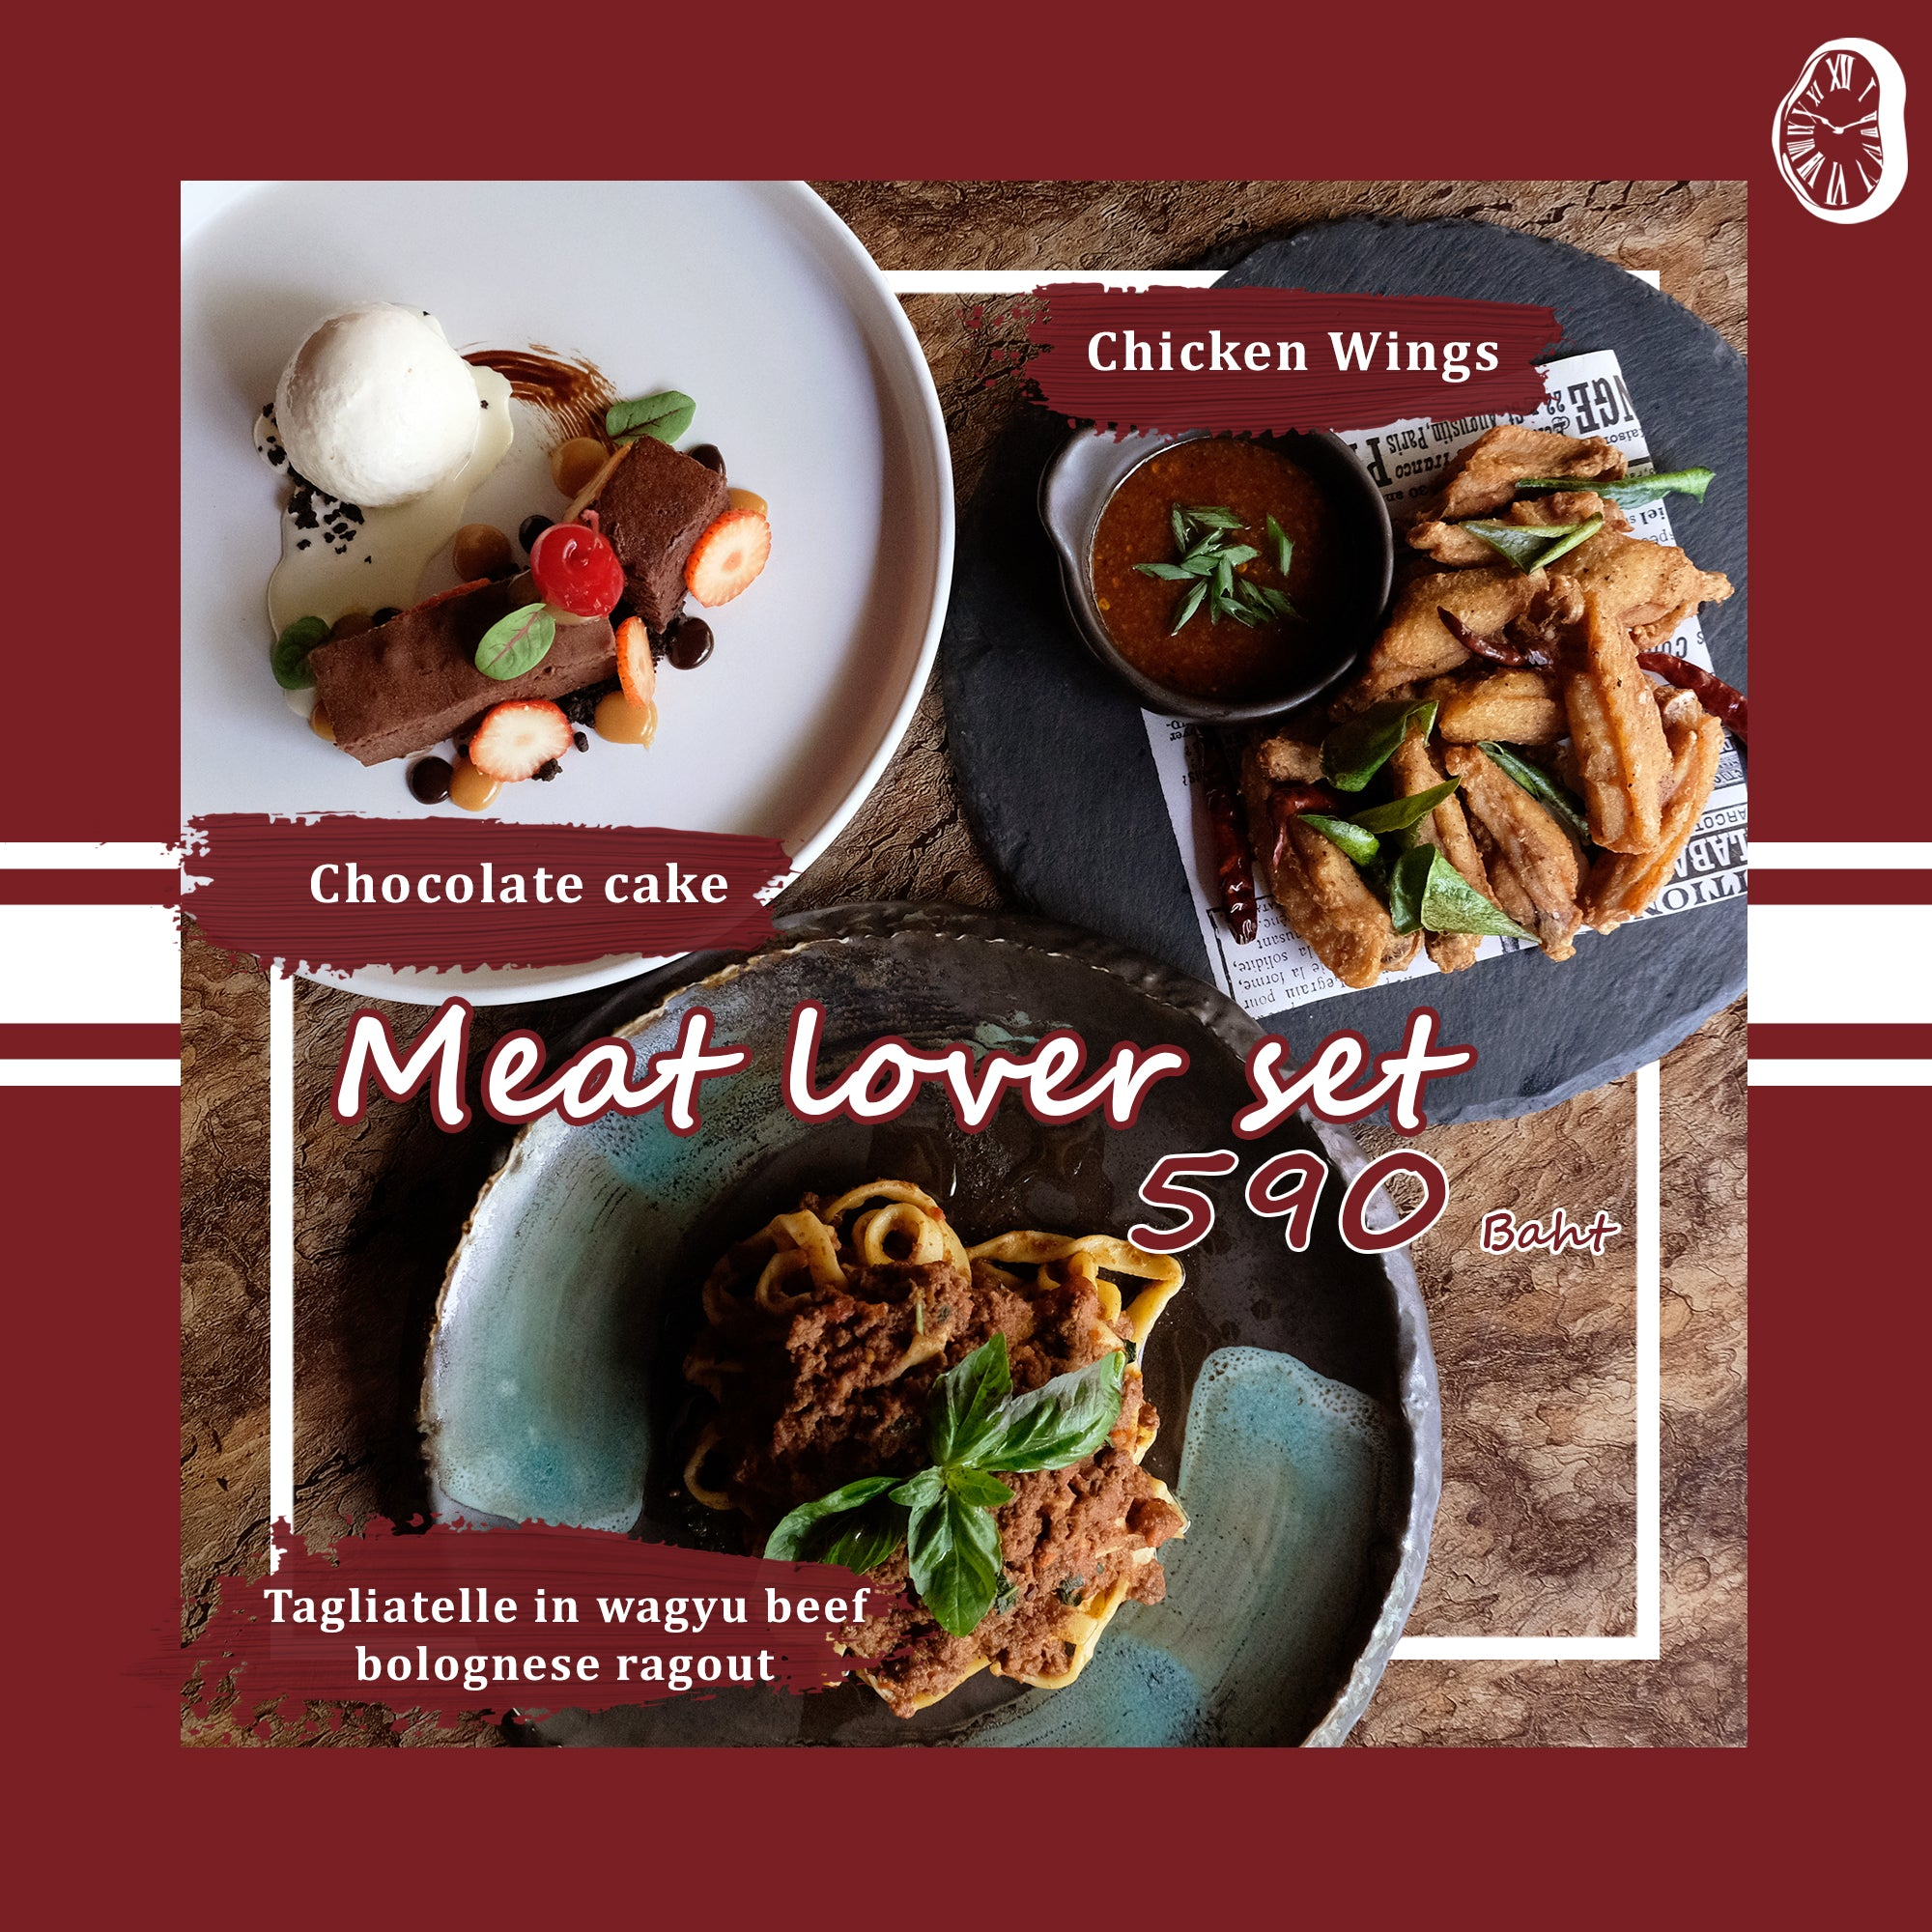 MEAT LOVER - SET MENU